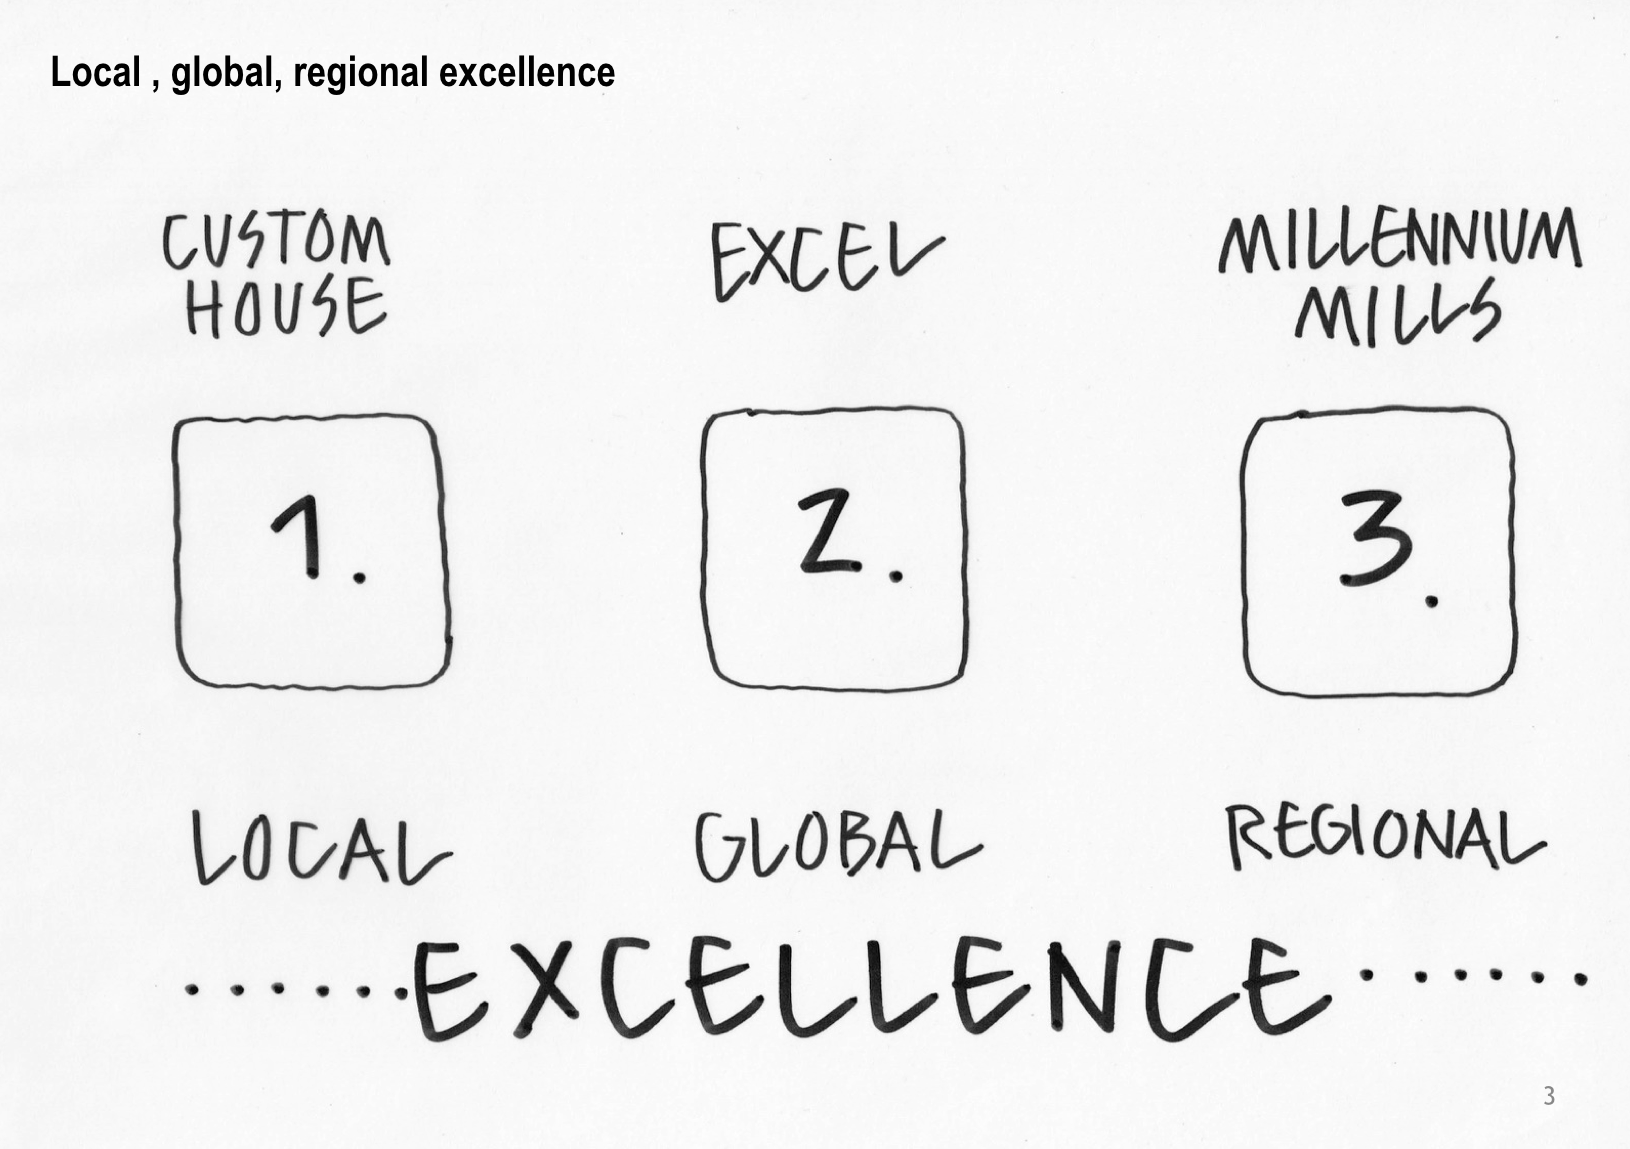 Diagram showing Custom House (local excellence), ExCeL centre (global excellence) and Millennium Mills (regional excellence)